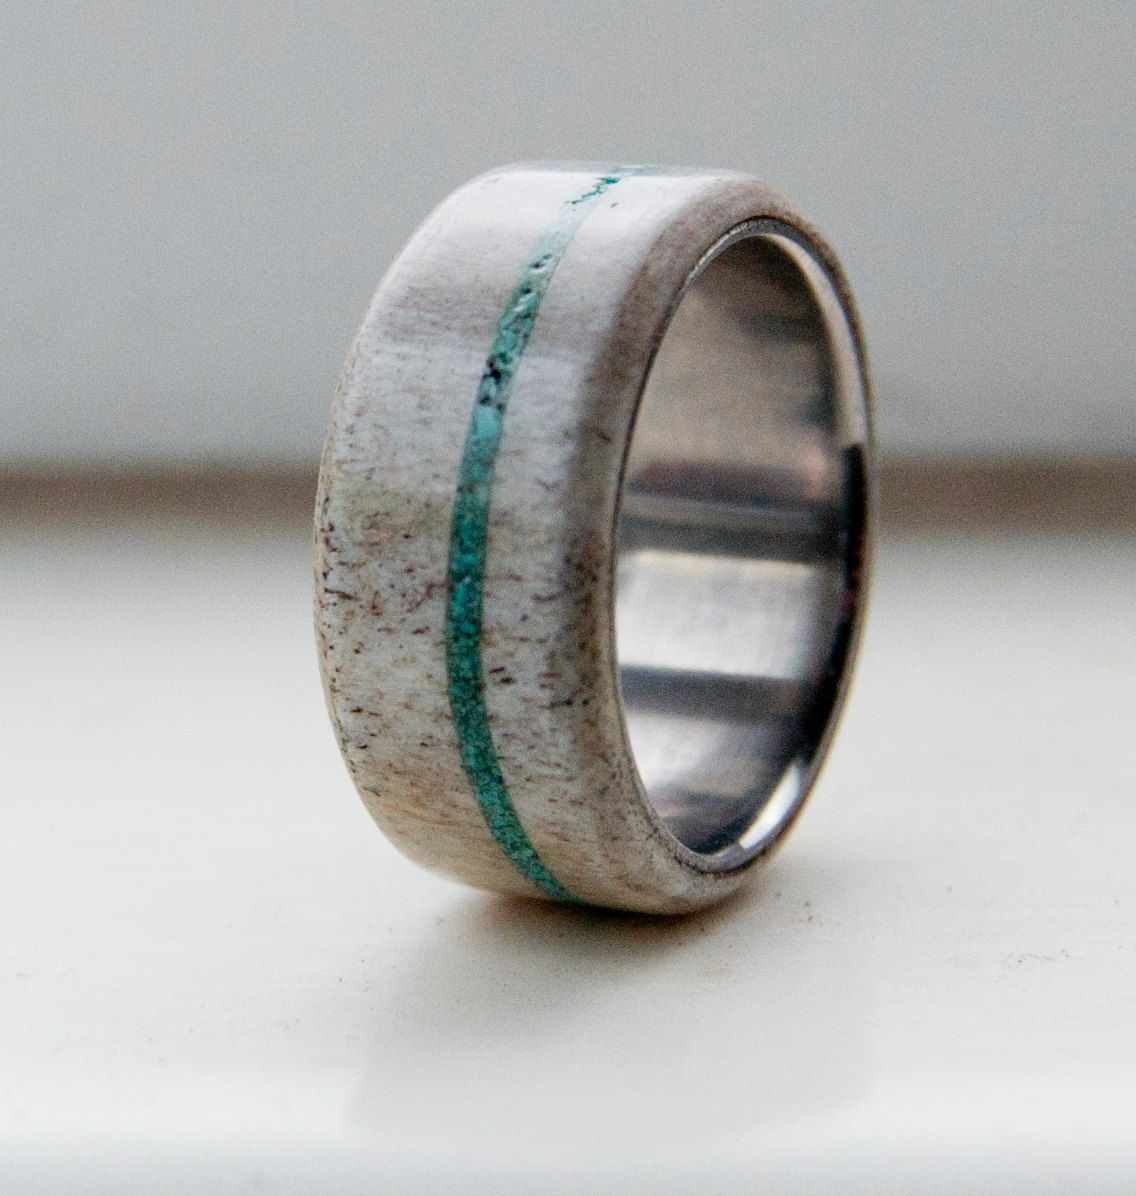 The Remmy Antler Overlay Ring With Offset Turquoise Staghead Designs In 2019 Turquoise Wedding Band Rings Wedding Men